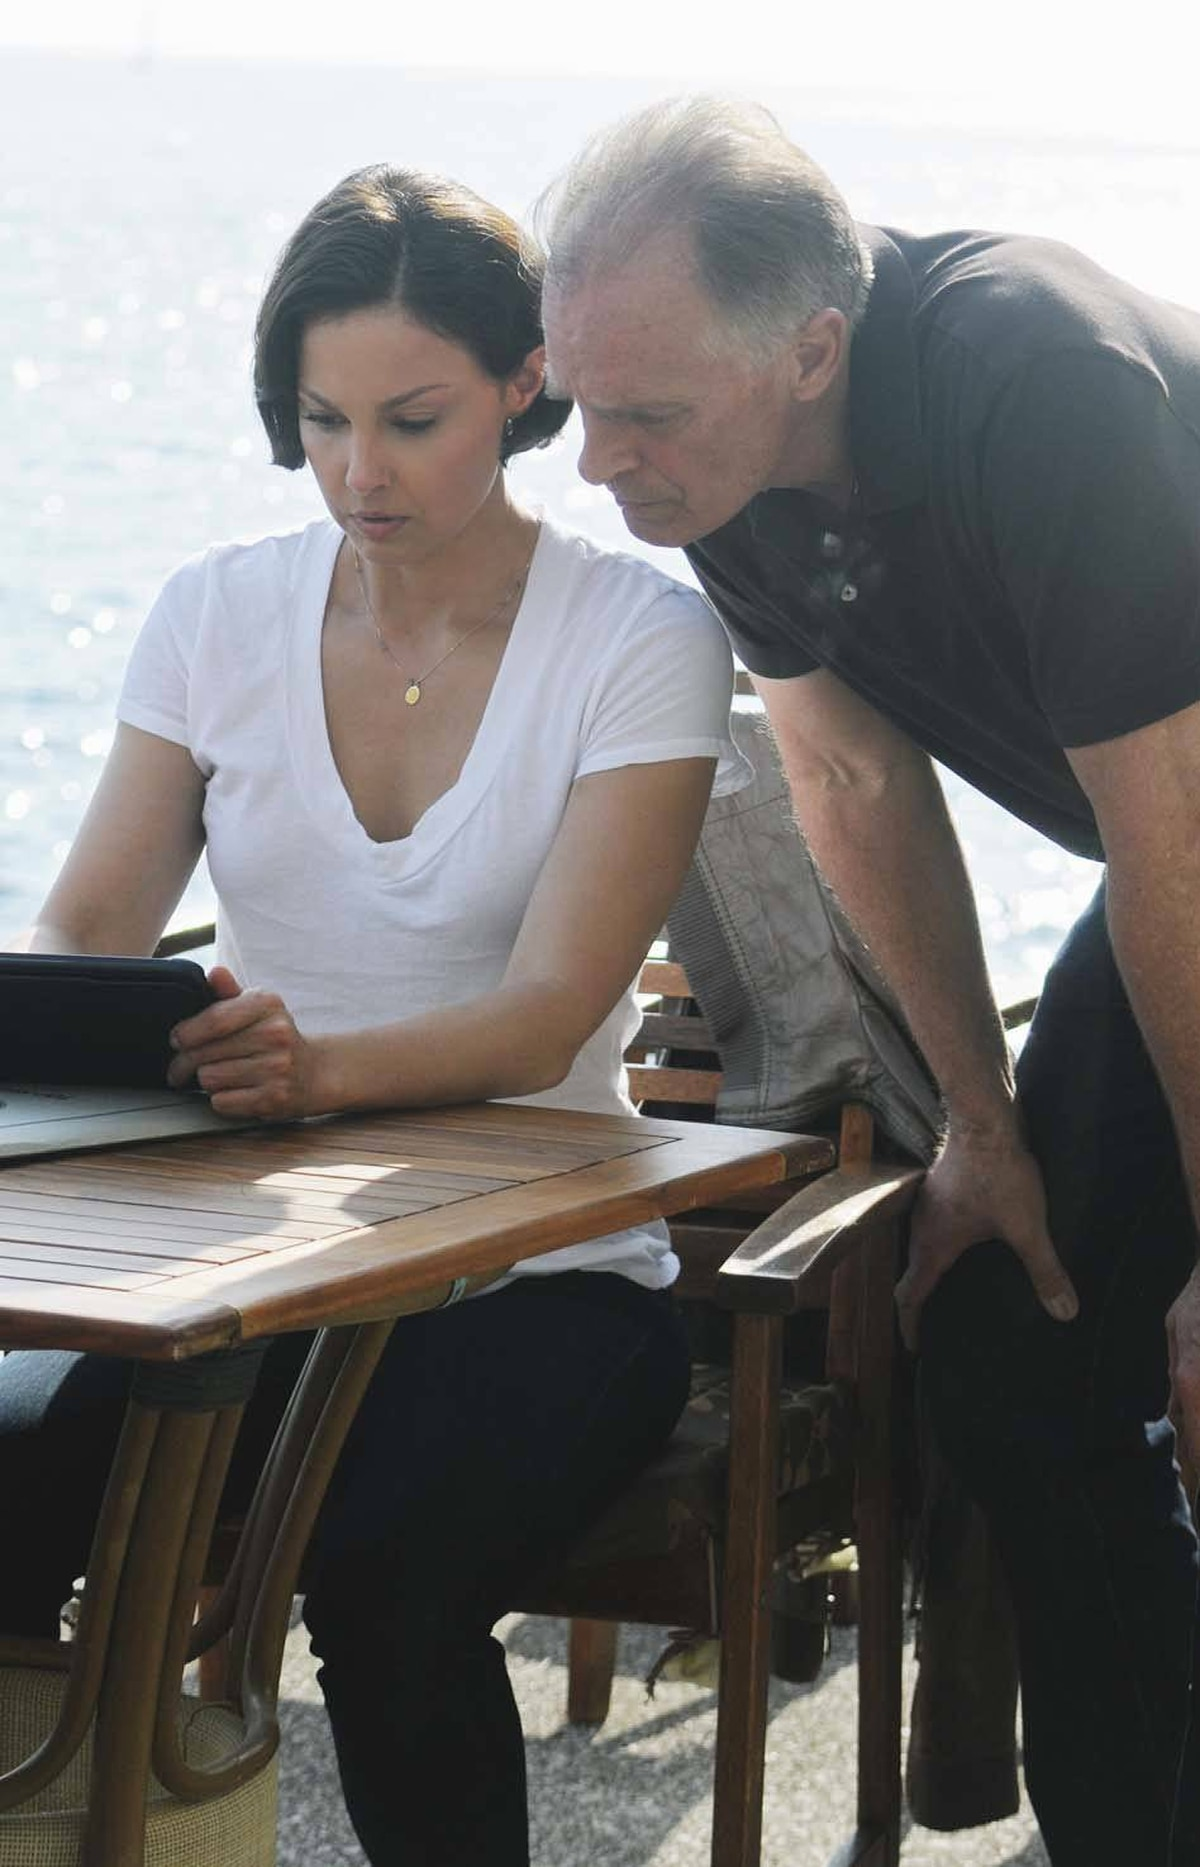 DRAMA Missing CTV, 8 p.m. ET/PT It seems people just love watching Ashley Judd kick butt. Since launching three weeks ago, this action-drama starring Judd as a former CIA operative knocking heads and taking names in search of her missing son has been a ratings magnet on both sides of the border. In the U.S., the debut attracted nearly nine-million viewers; the show has steadily been drawing more than two-million viewers for CTV here each week. The formula involves scenes of breakneck action wedged in-between scenery of beautiful European locales. Tonight's episode takes place in Dubrovnik, Croatia, and finds Judd's character of Becca reunited with her CIA mentor, Martin Newman (Keith Carradine), who helps revise the search plans for the missing teen. And then, it's fight club!